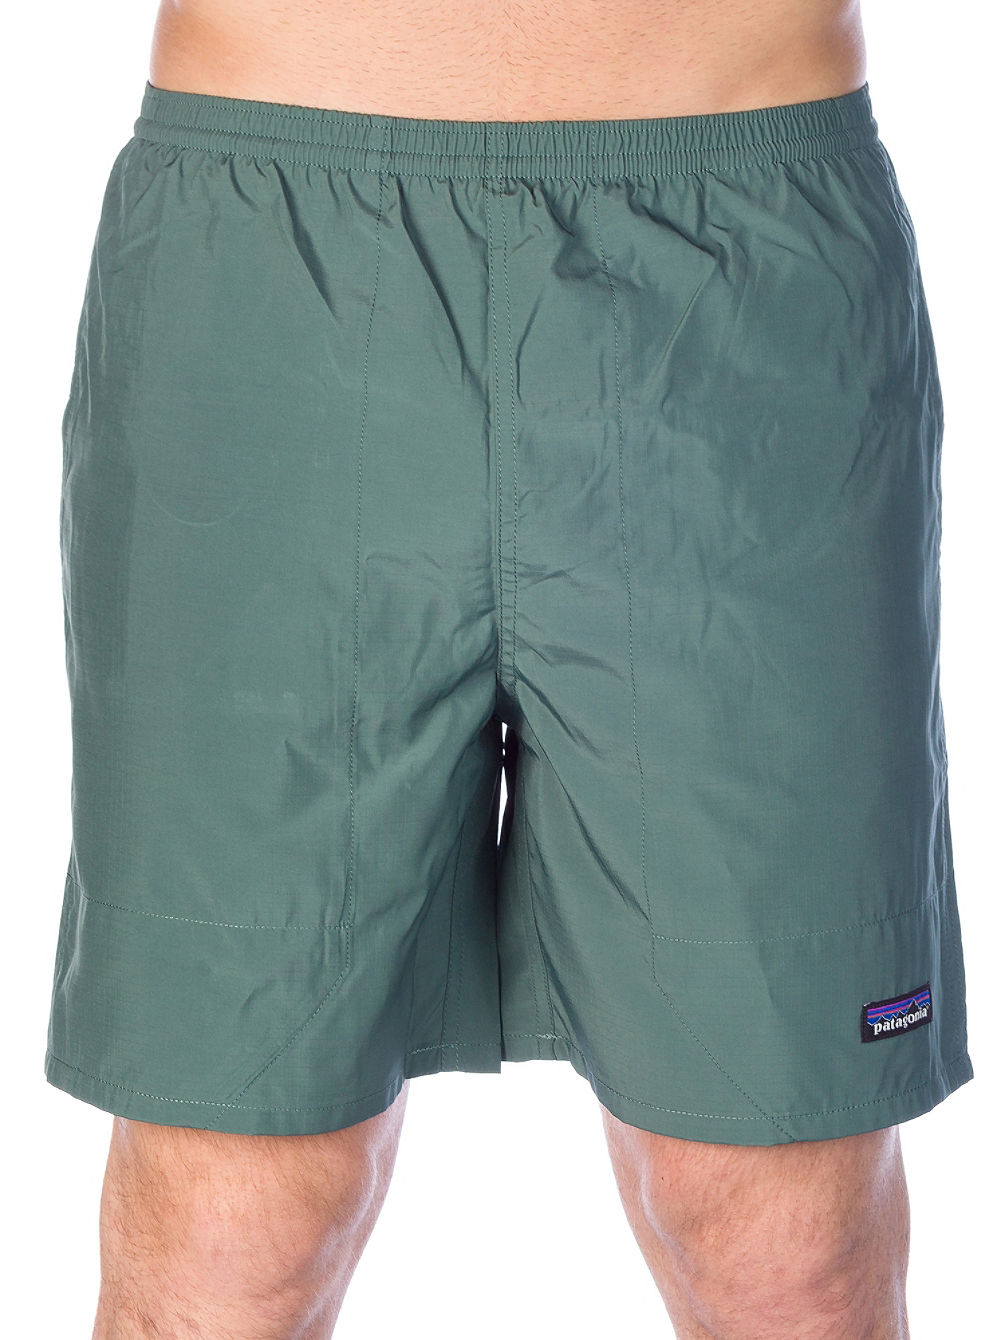 Baggies Lights Shorts